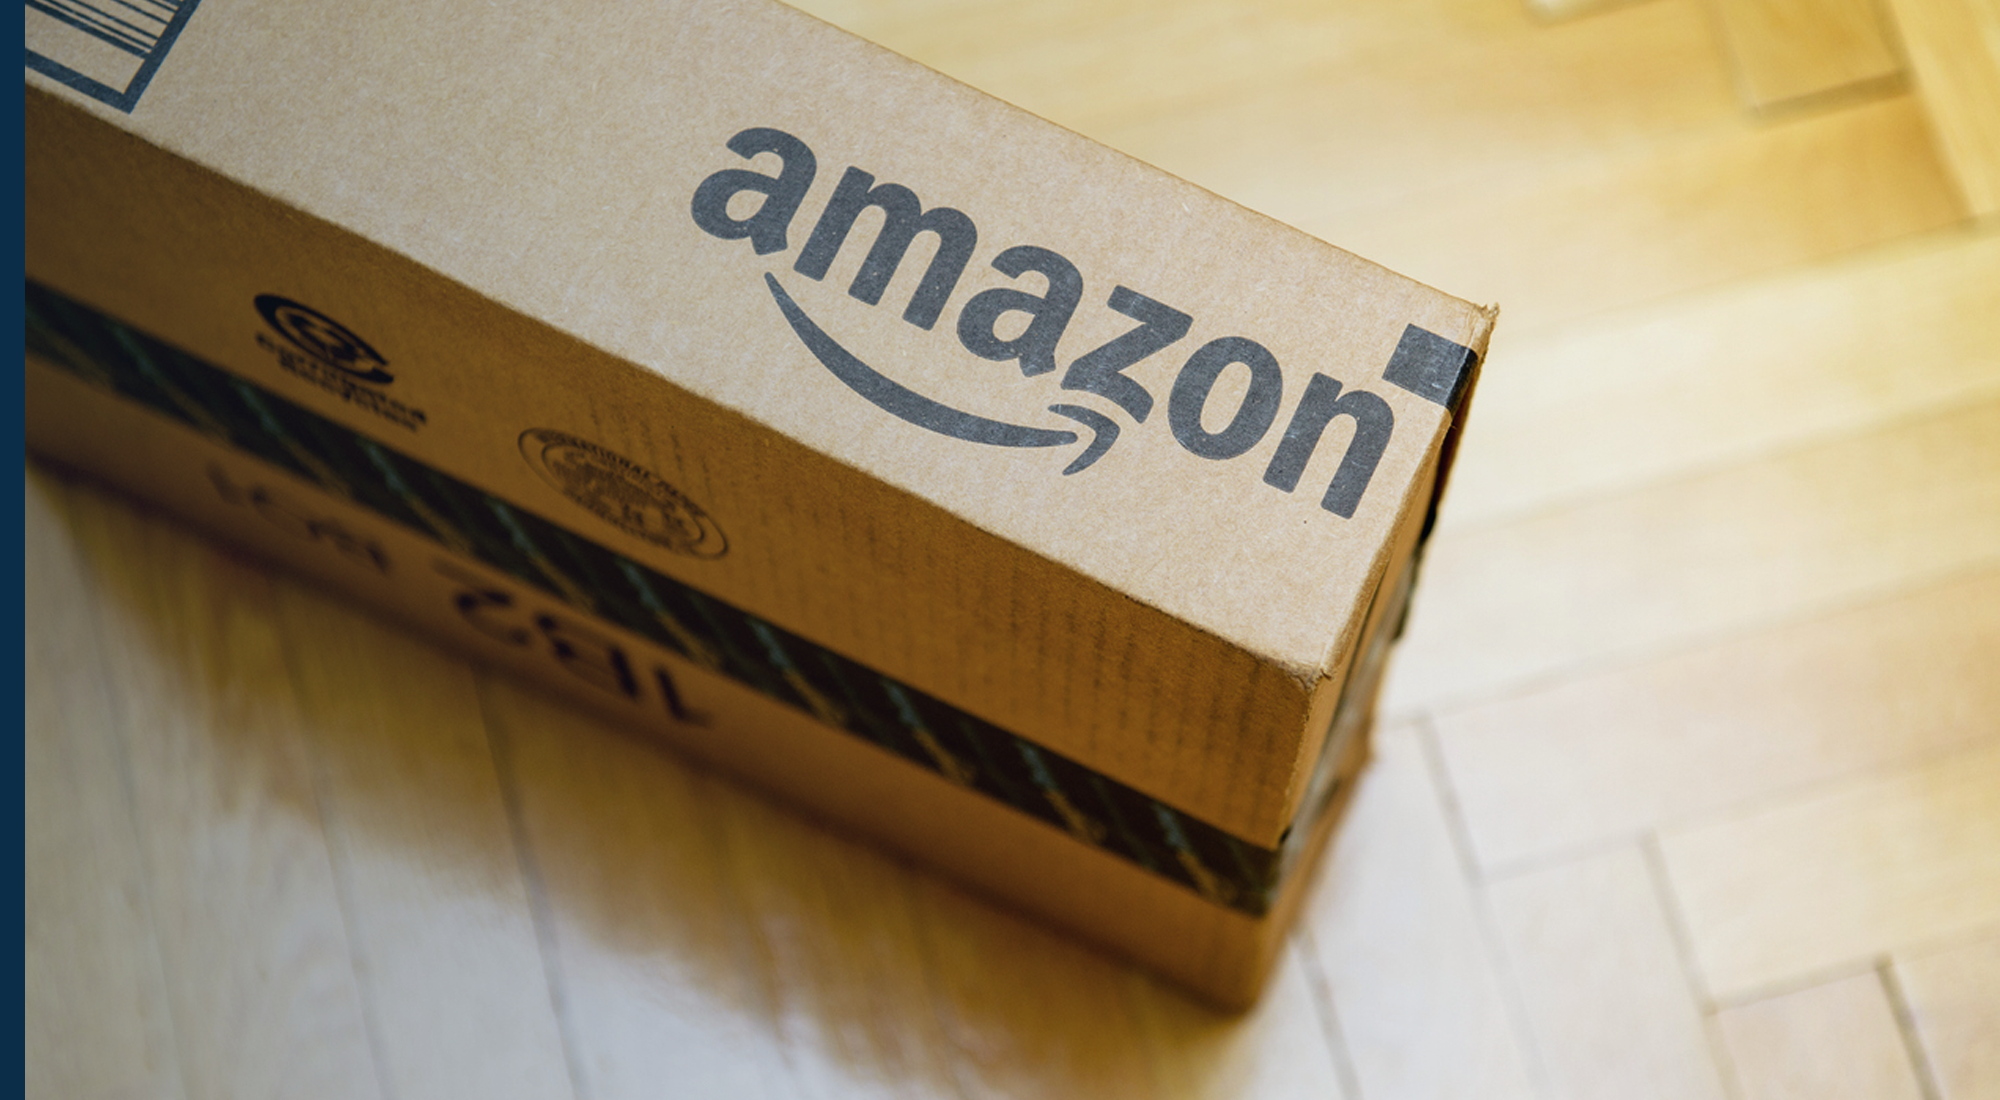 Top 5 ways for Amazon DSPs to save money on workers' comp